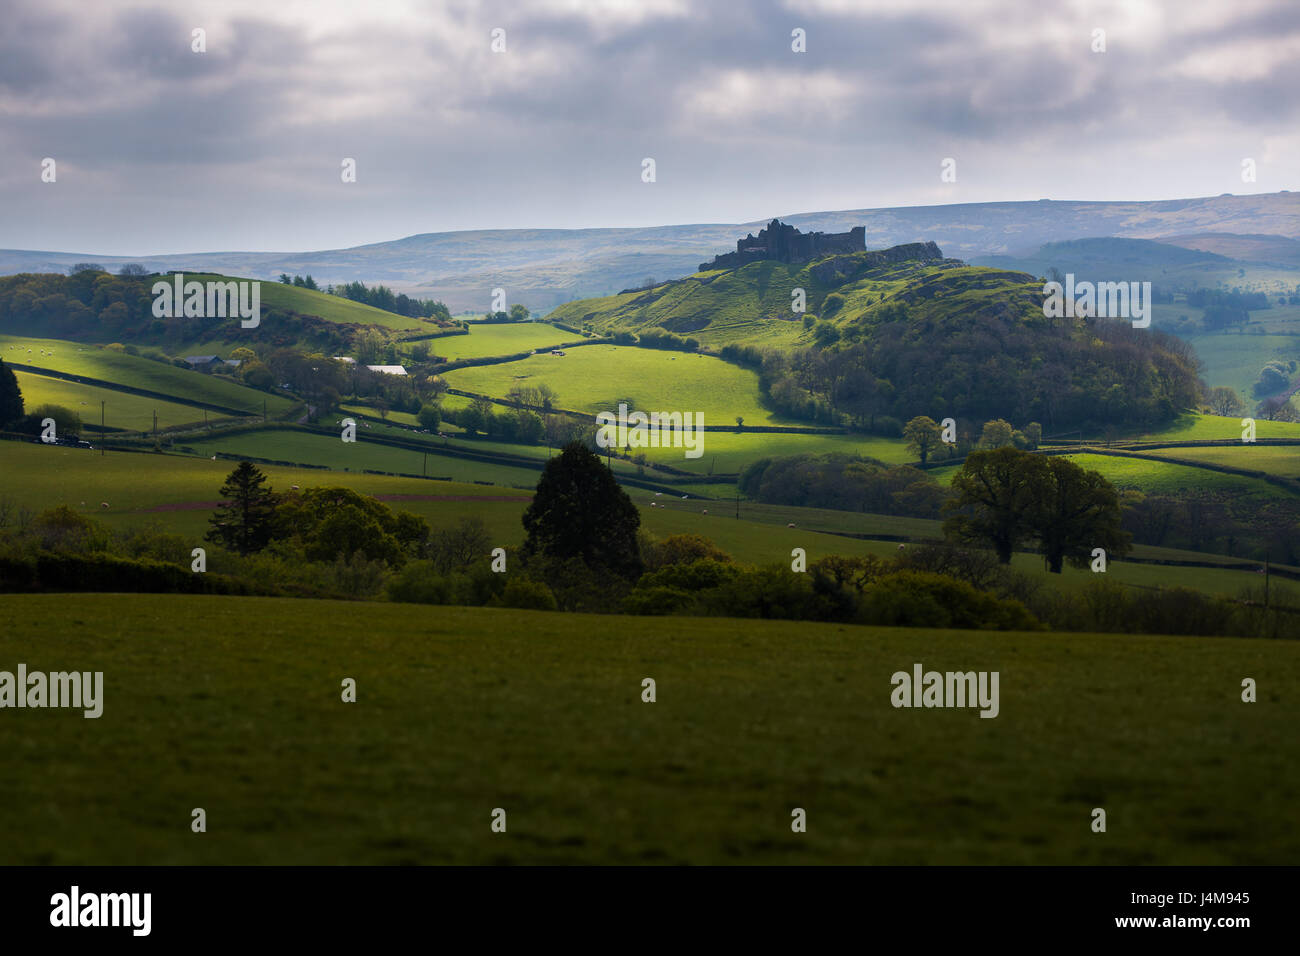 Dramatic Silhouette of Carreg Cennen Castle in the Beautiful Rolling Countryside of Carmarthenshire, Wales, UK - Stock Image